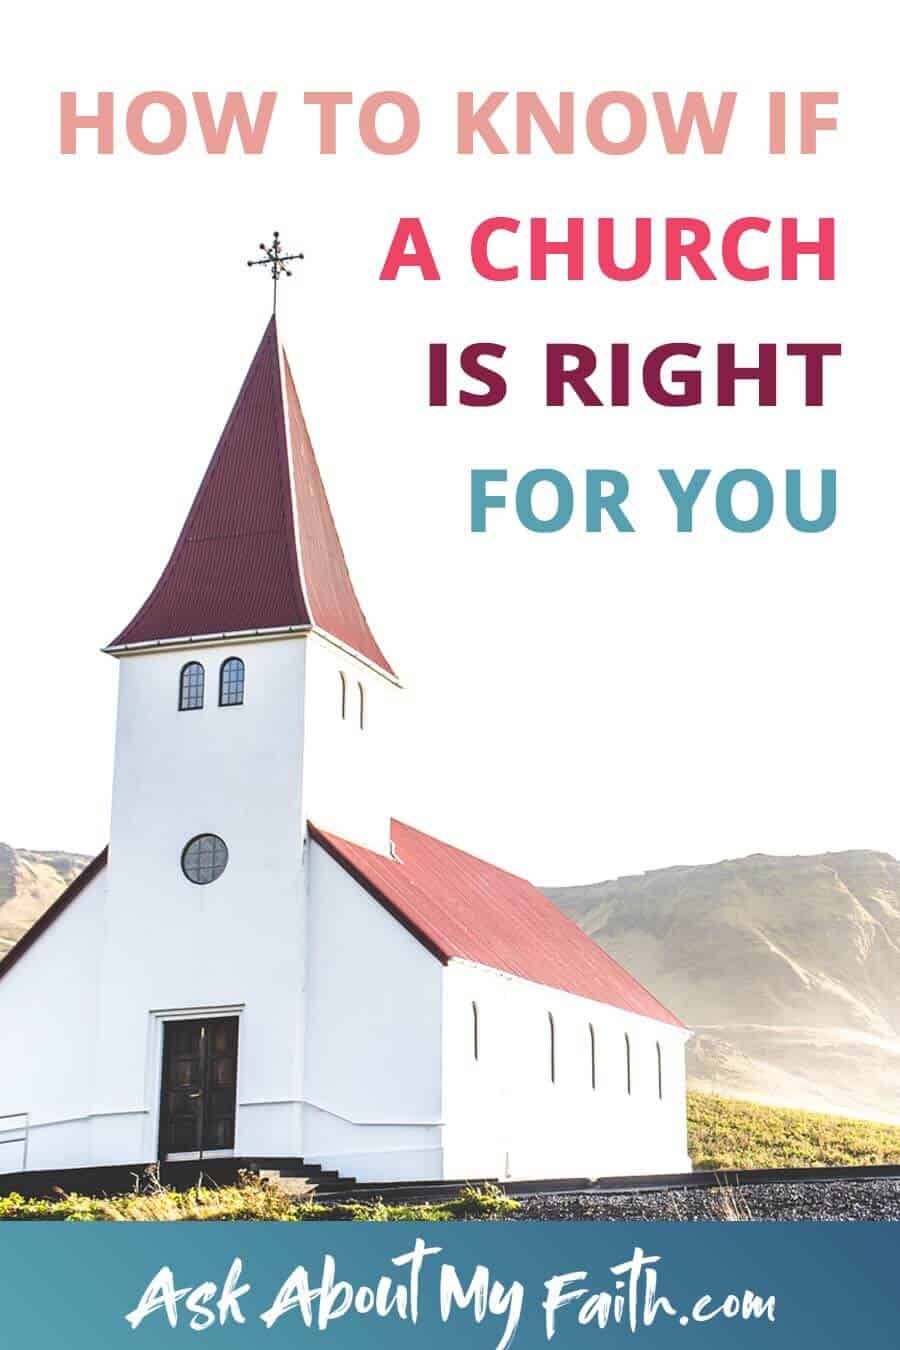 How to Know if a Church is Right for You | Growing Your Faith | Community